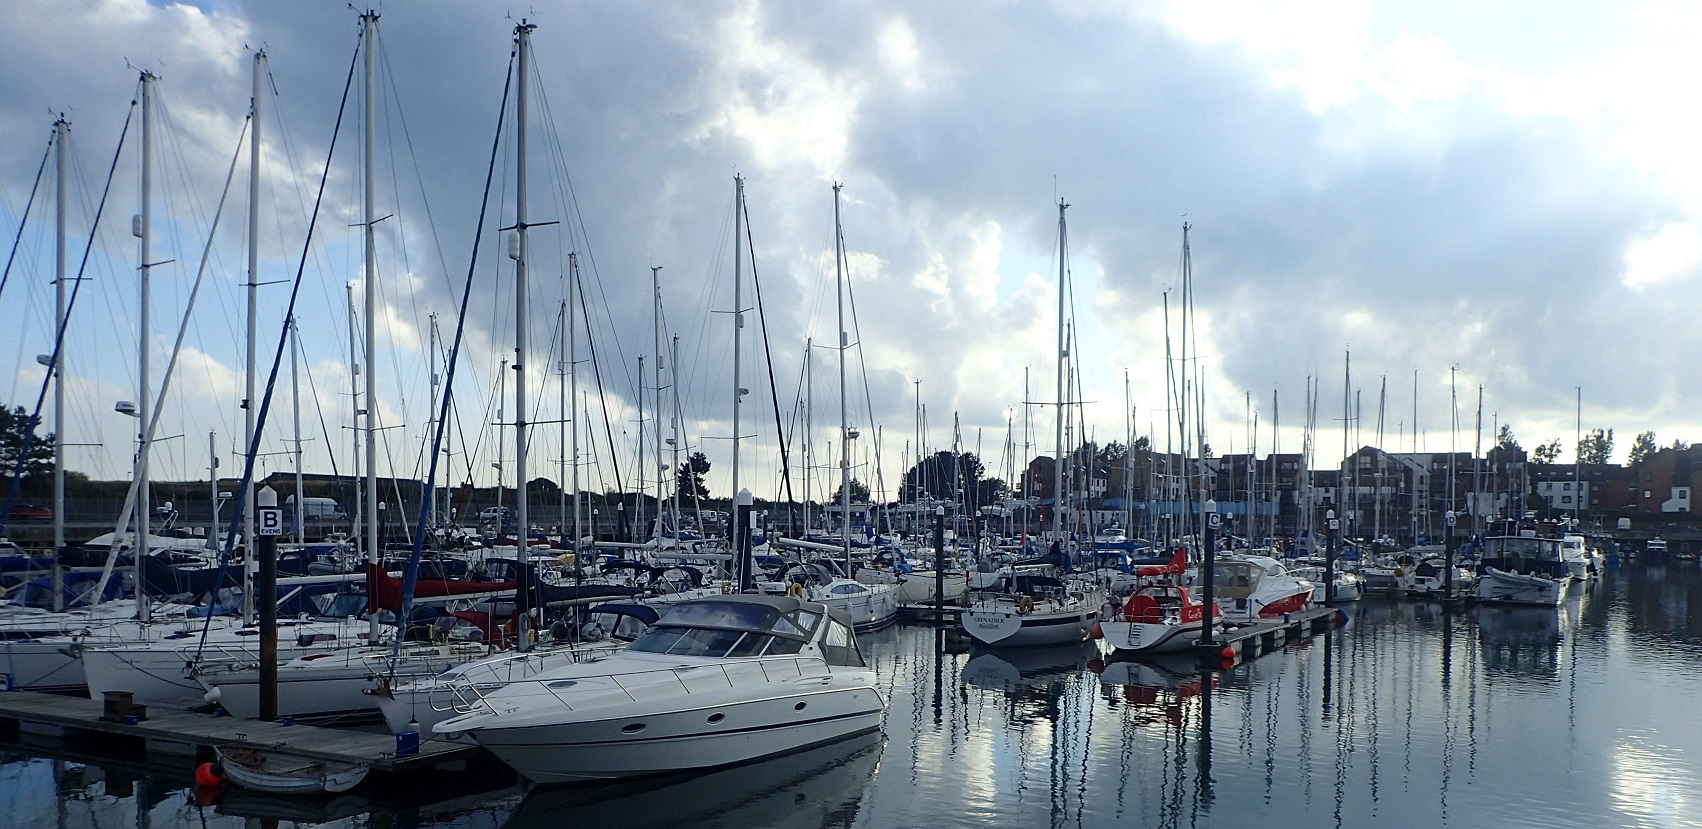 Our winter home - Southsea Marina